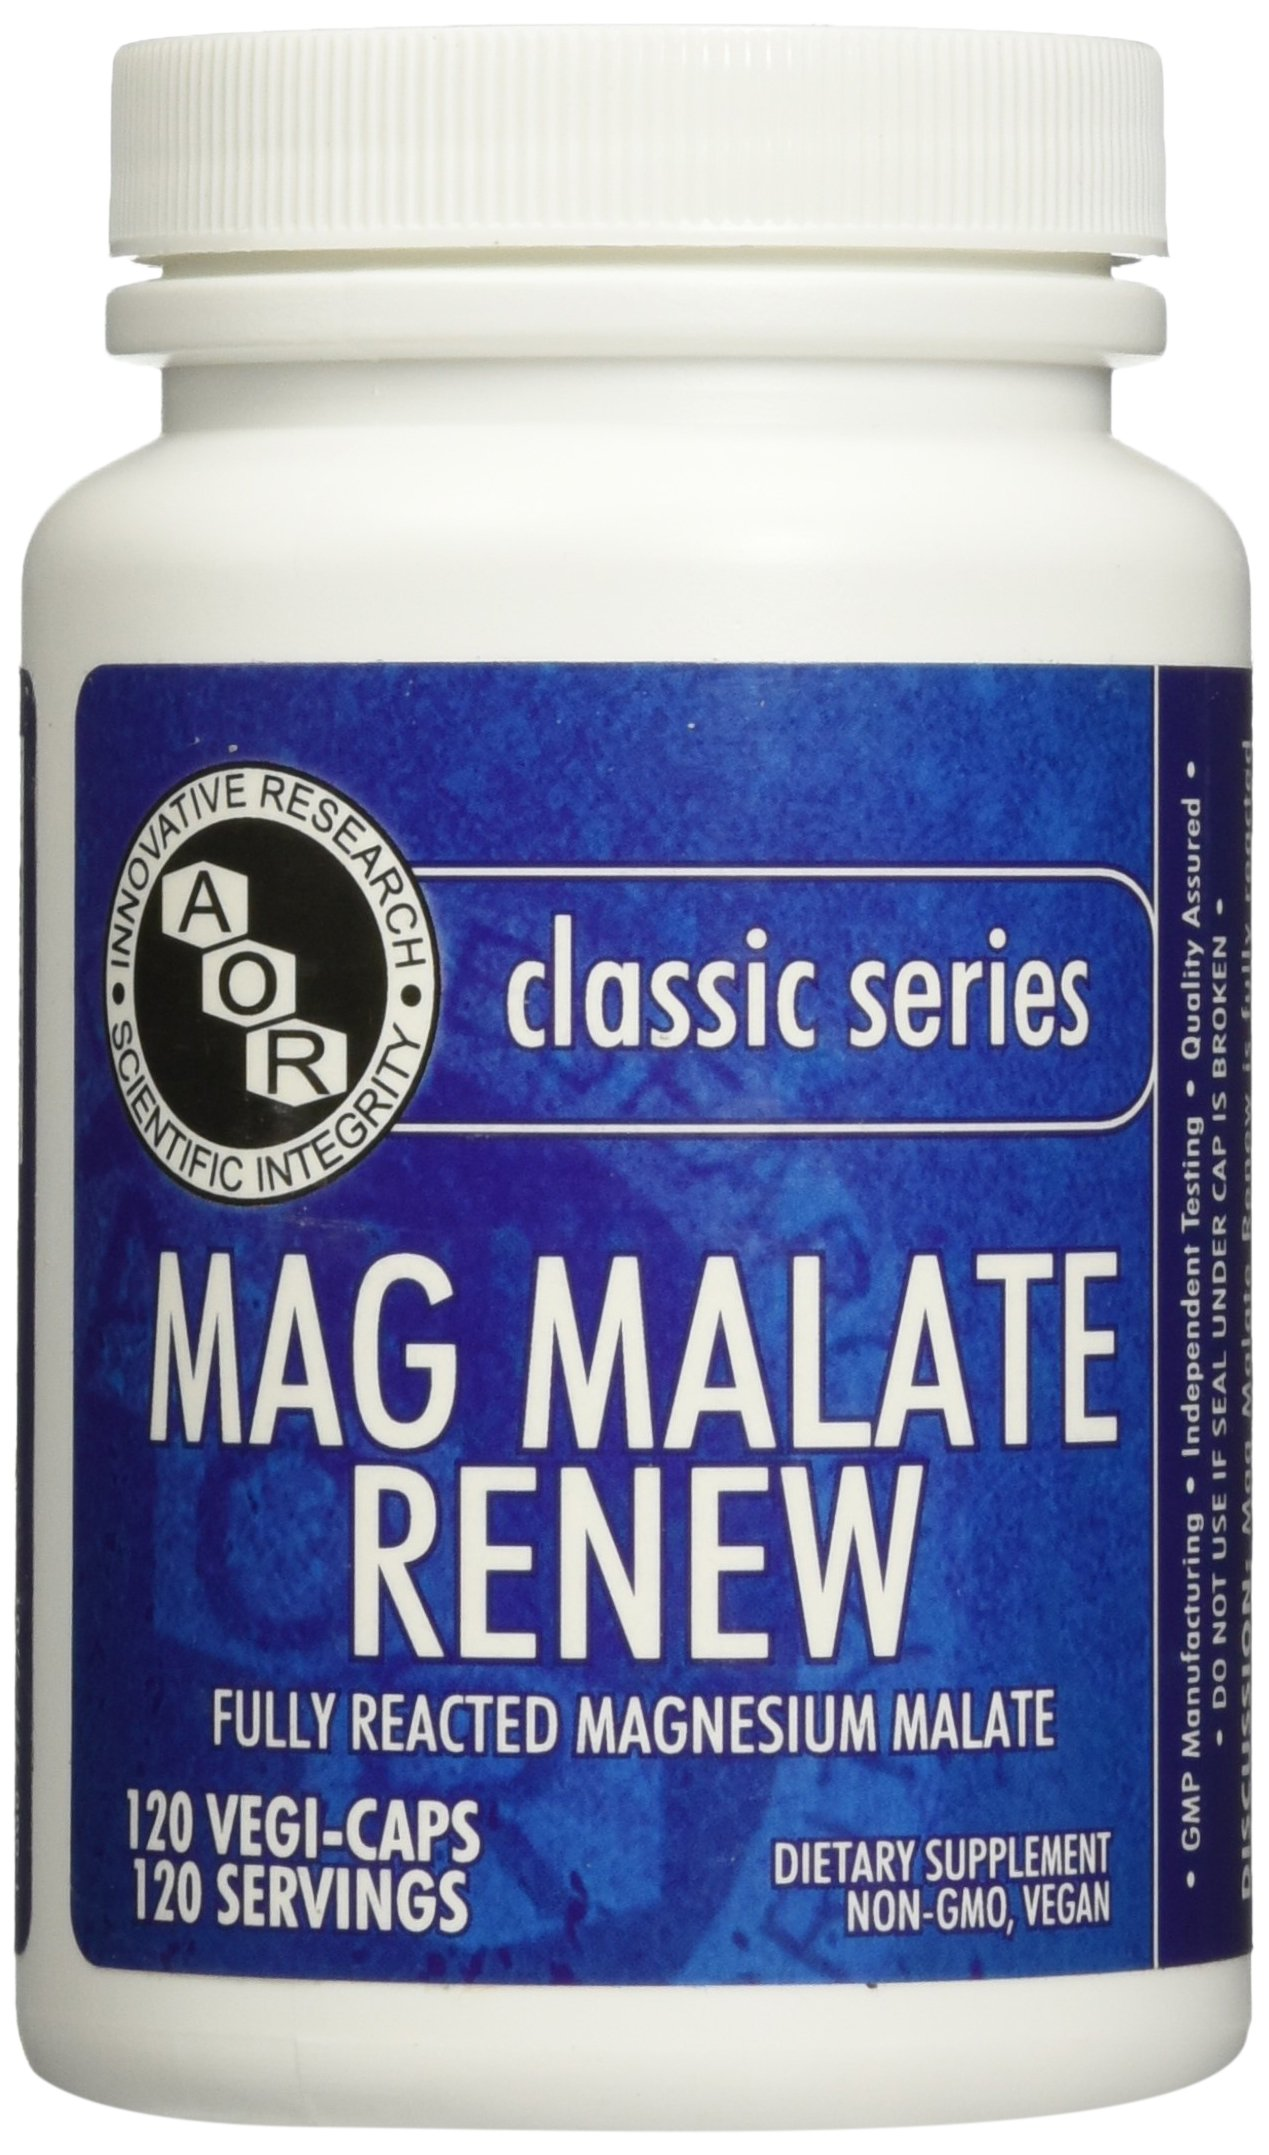 Advanced Orthomolecular Research AOR Mag Malate Renew Capsules, 120 Count